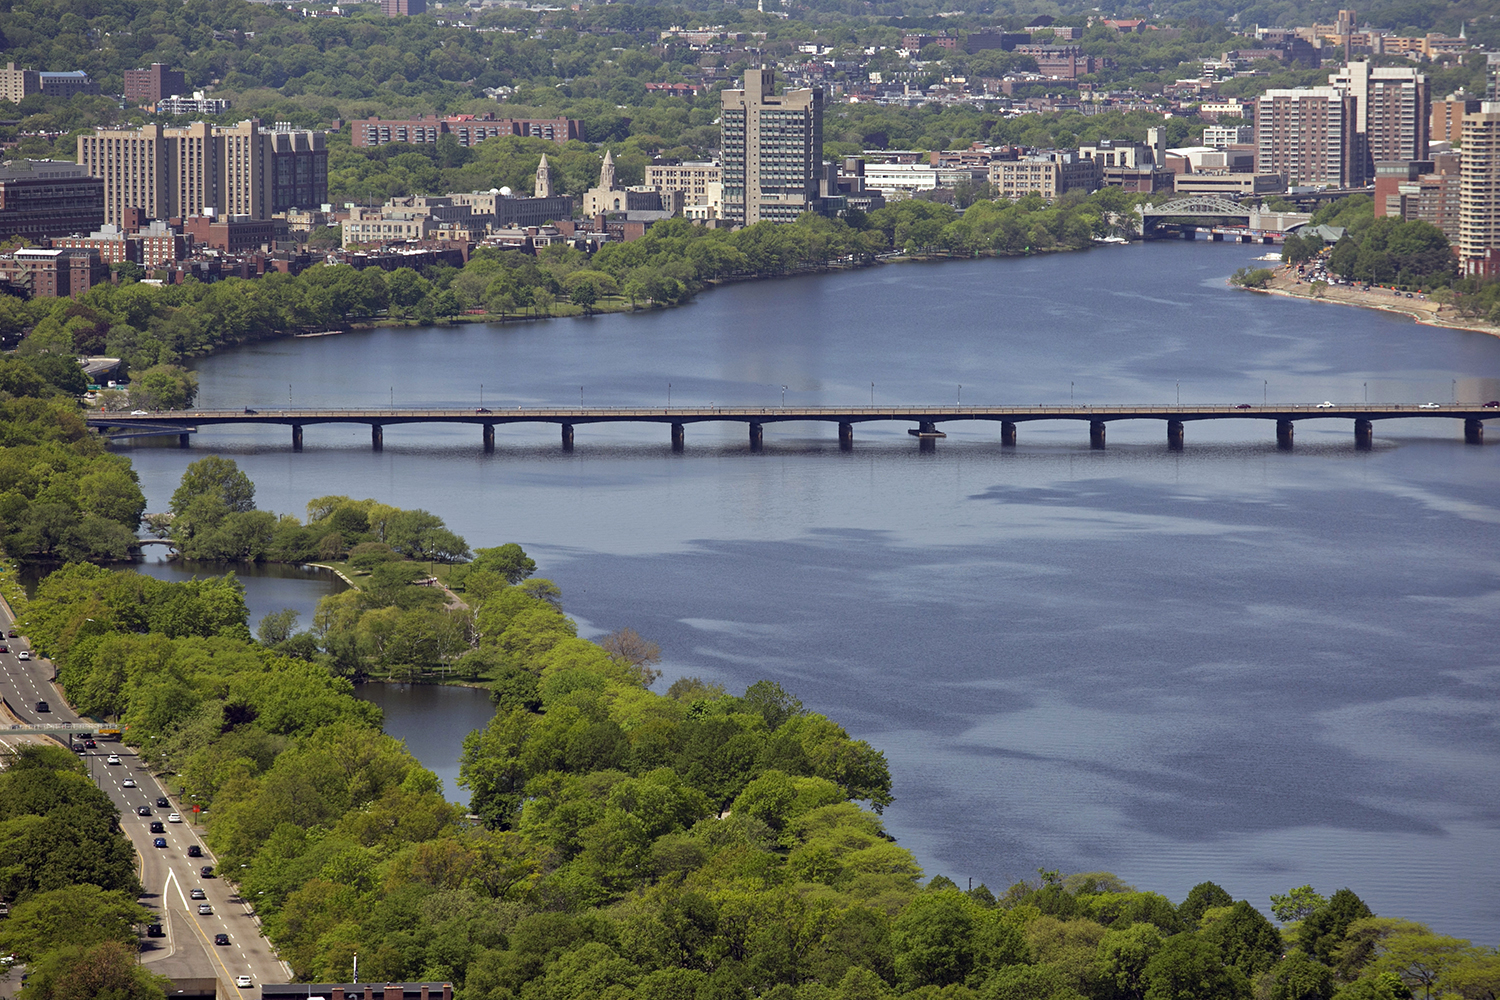 Bridges connect Boston (left) with Cambridge (right) over the Charles River. (Photo by Lauren Owens Lambert/GroundTruth)